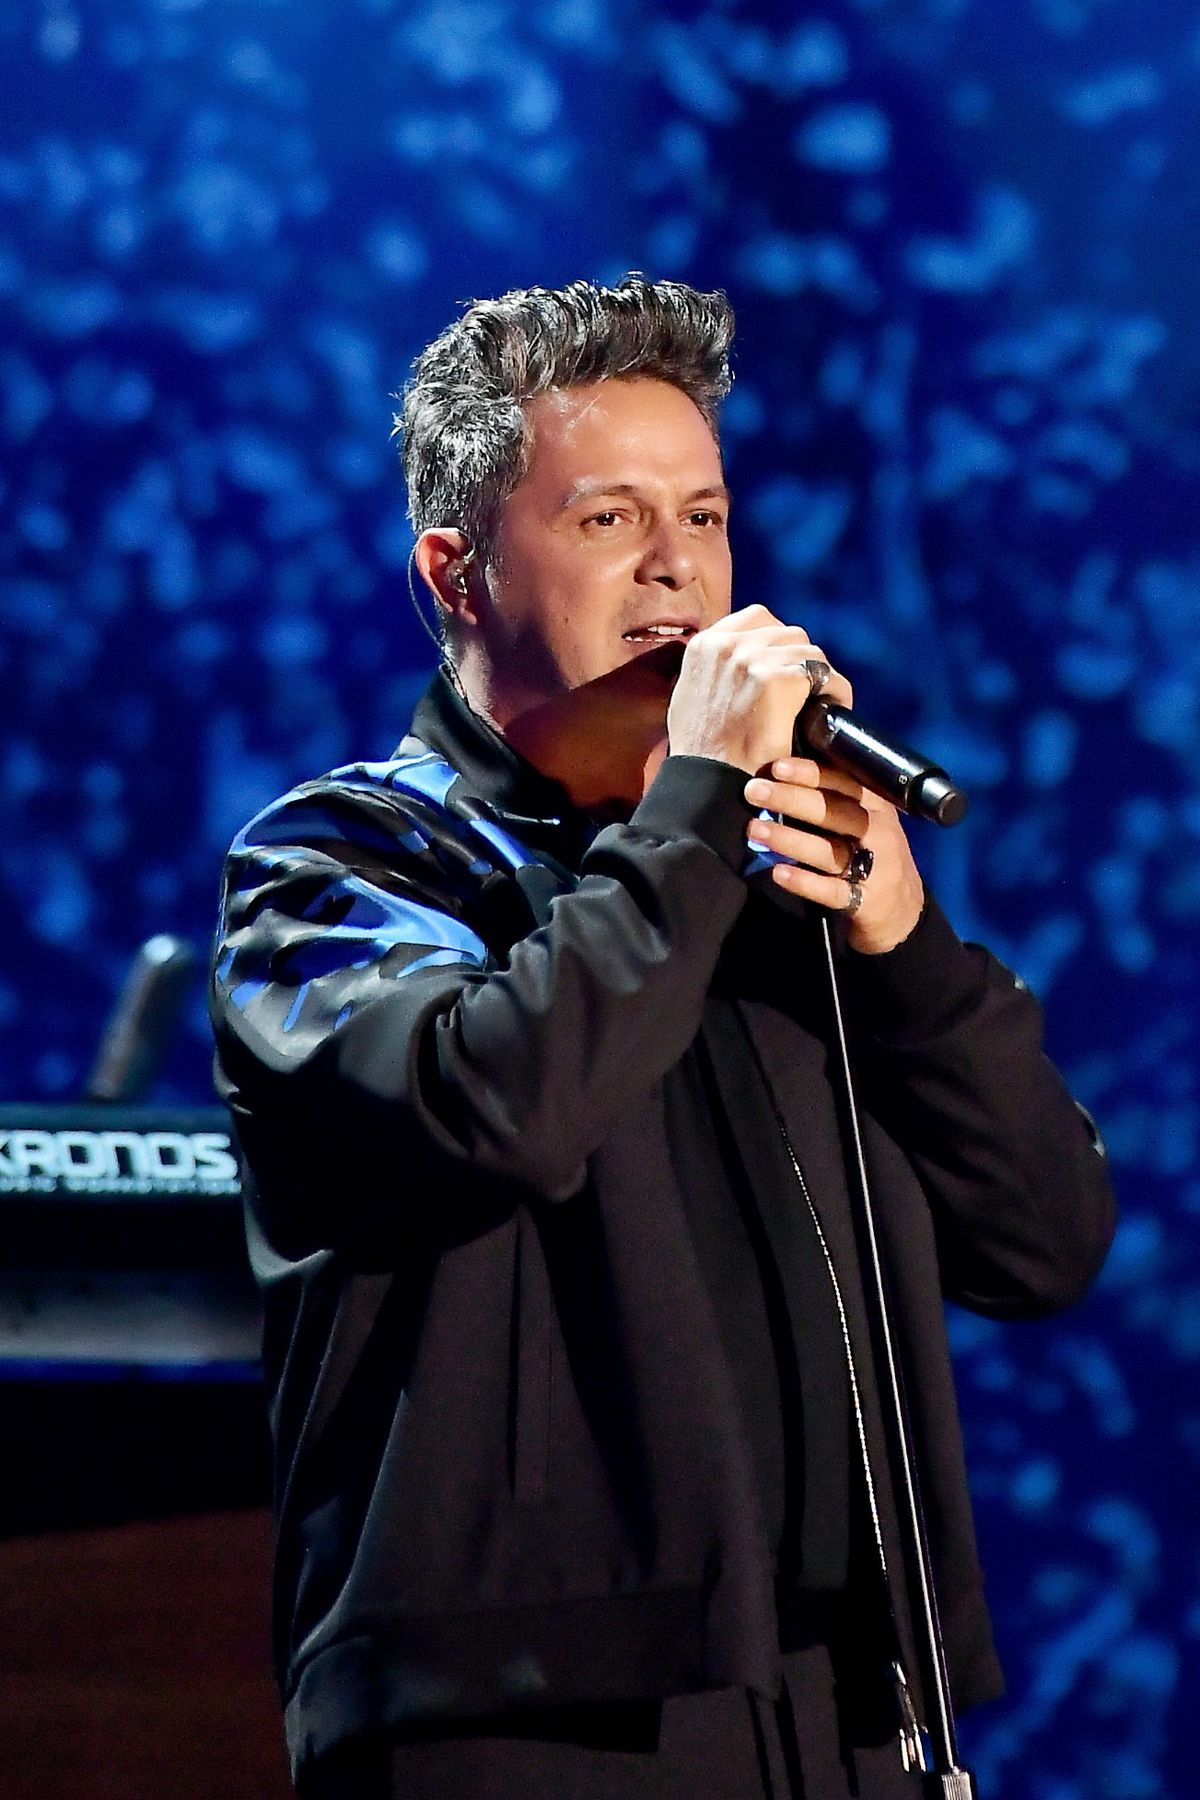 Alejandro Sanz performs onstage during the 18th Annual Latin Grammy Awards at MGM Grand Garden Arena in 2017 in Las Vegas.